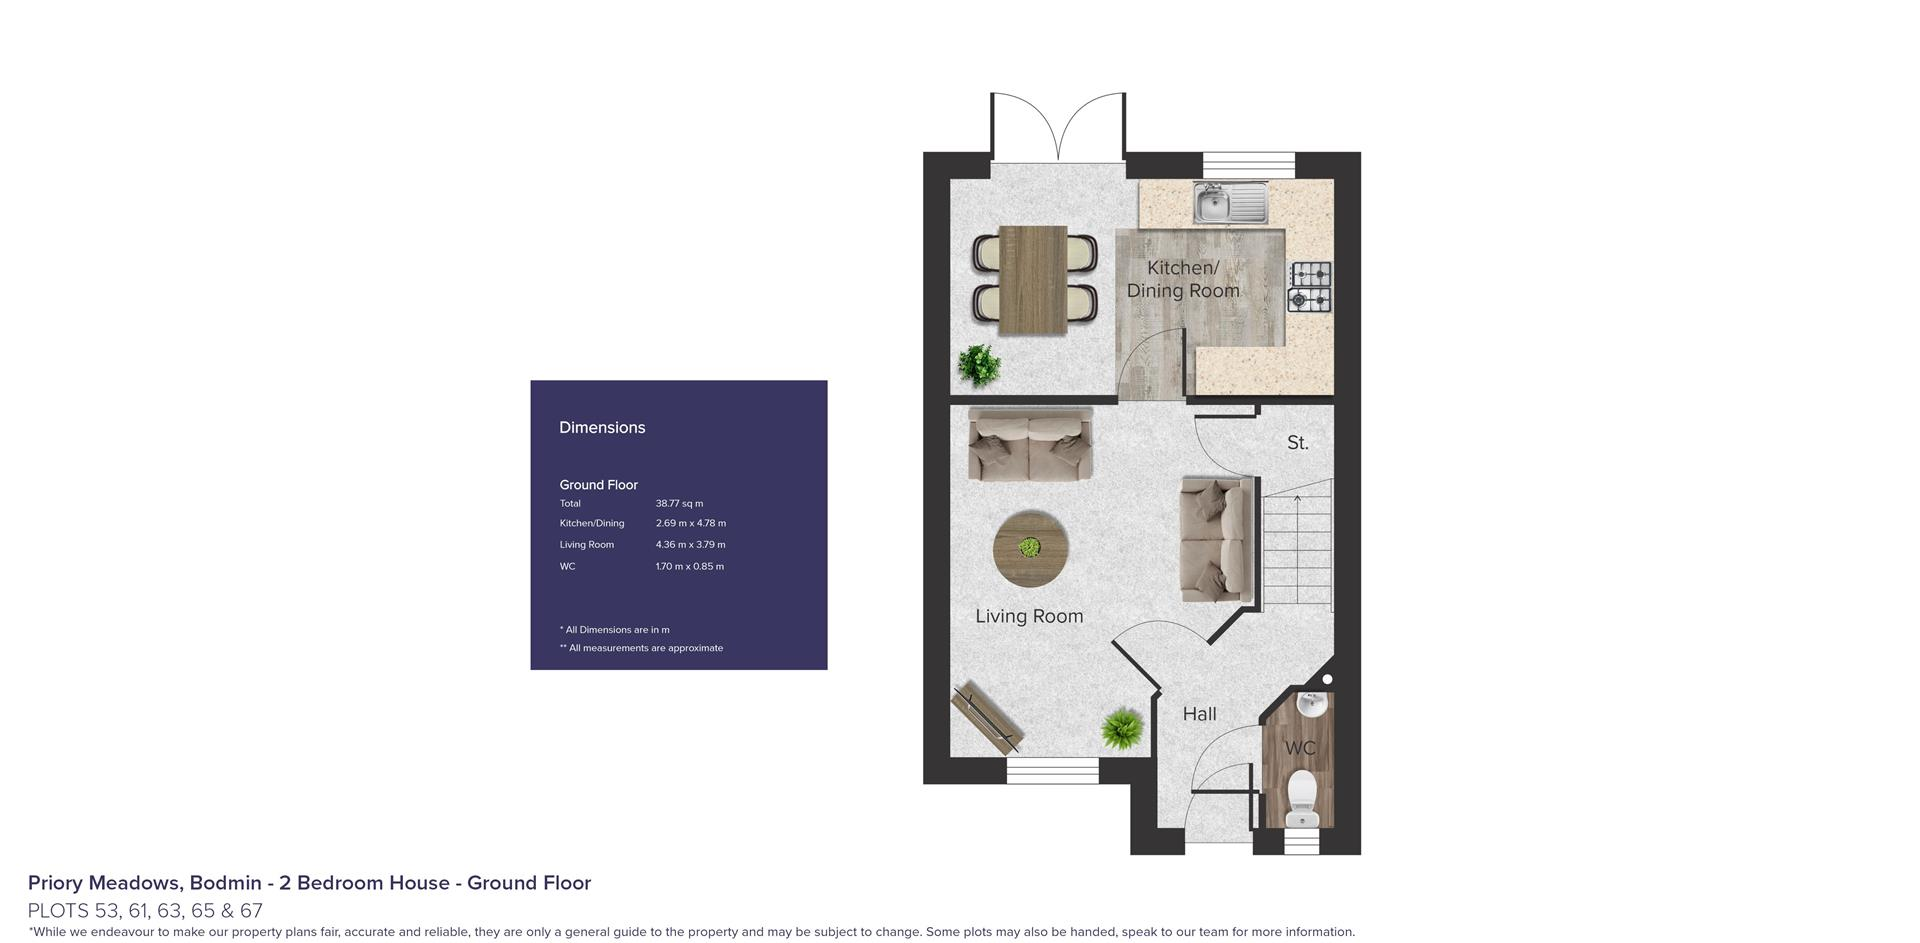 Priory Meadows, Bodmin_Plots 53, 61, 63, 65 & 67_G